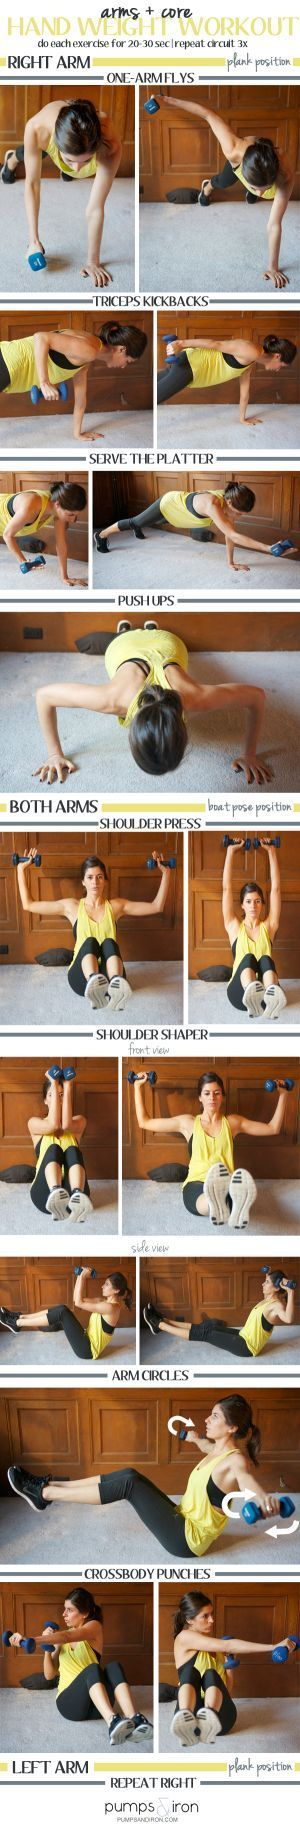 I get tons of requests for arm workouts, and since thisupper body workout using light hand weights was a big hit, I decided to do another. This time, I'm making all the arm exercises a little more...